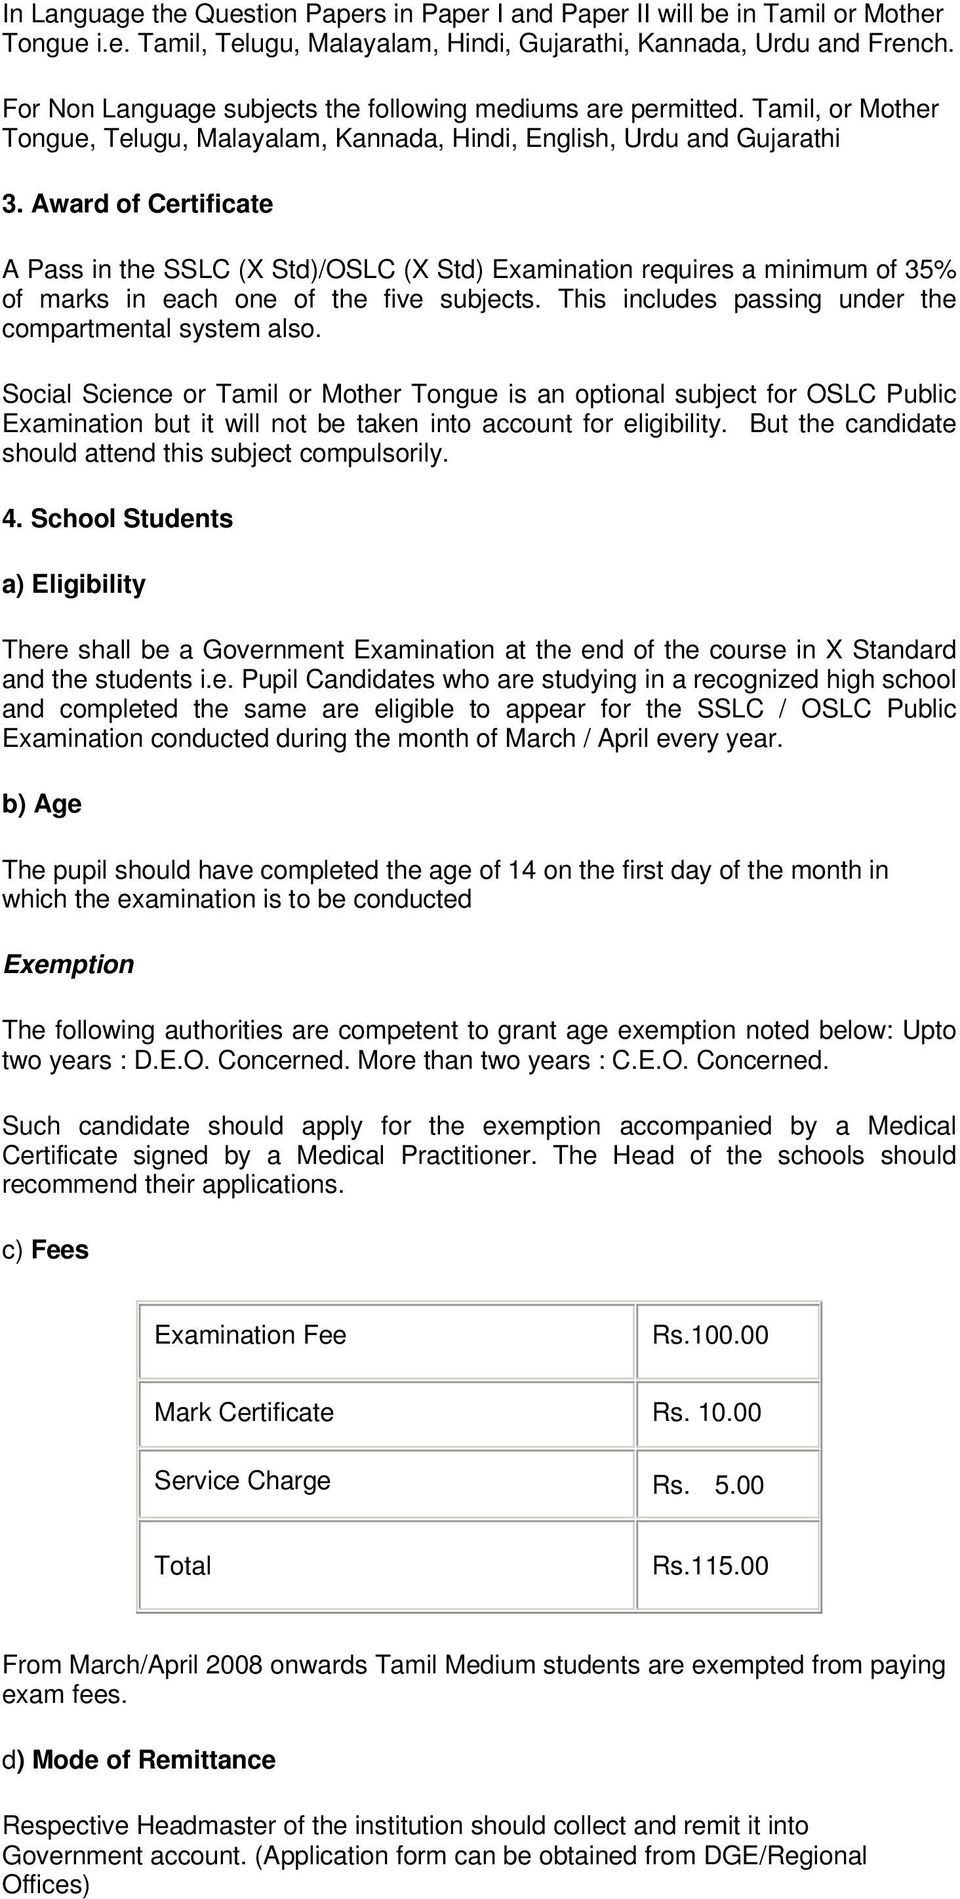 What is the total marks for 10th matric public 500 or 1100?